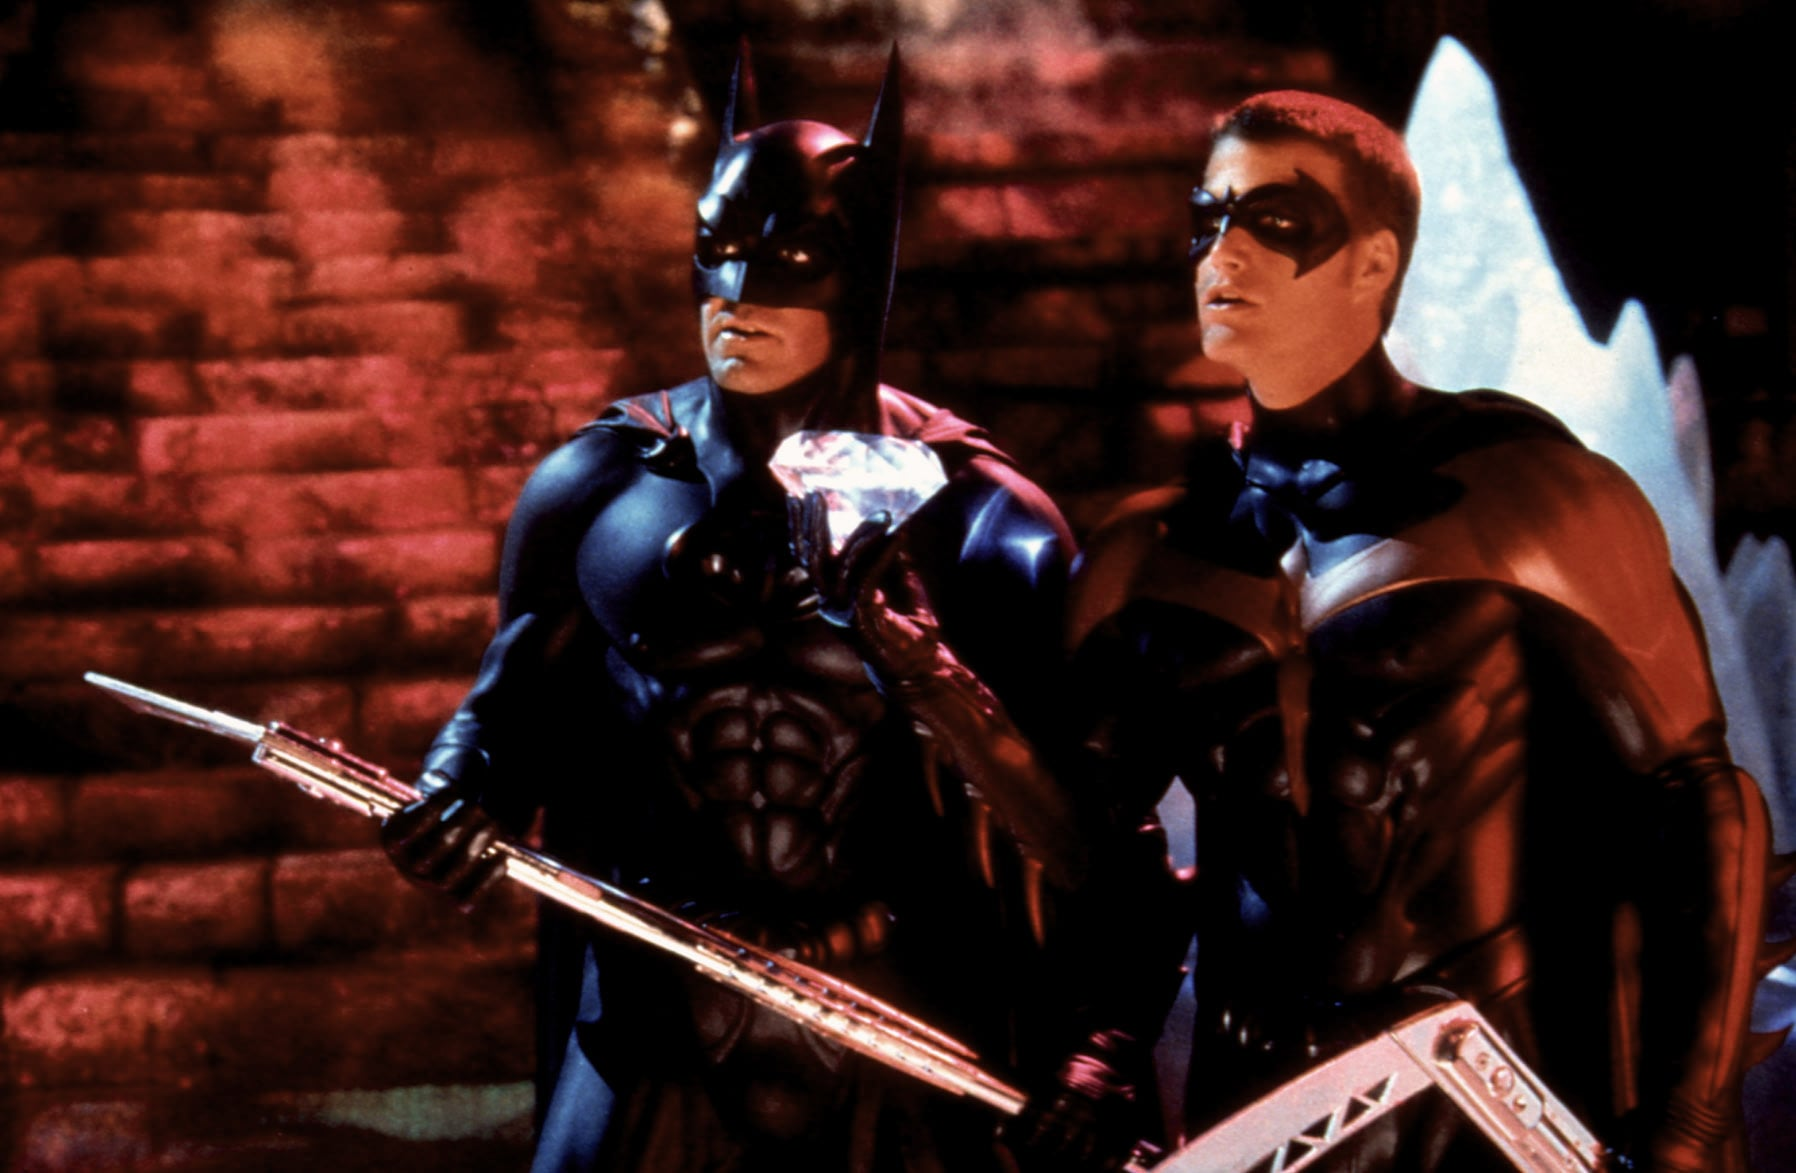 BATMAN AND ROBIN, George Clooney, Chris O'Donnell, 1997.